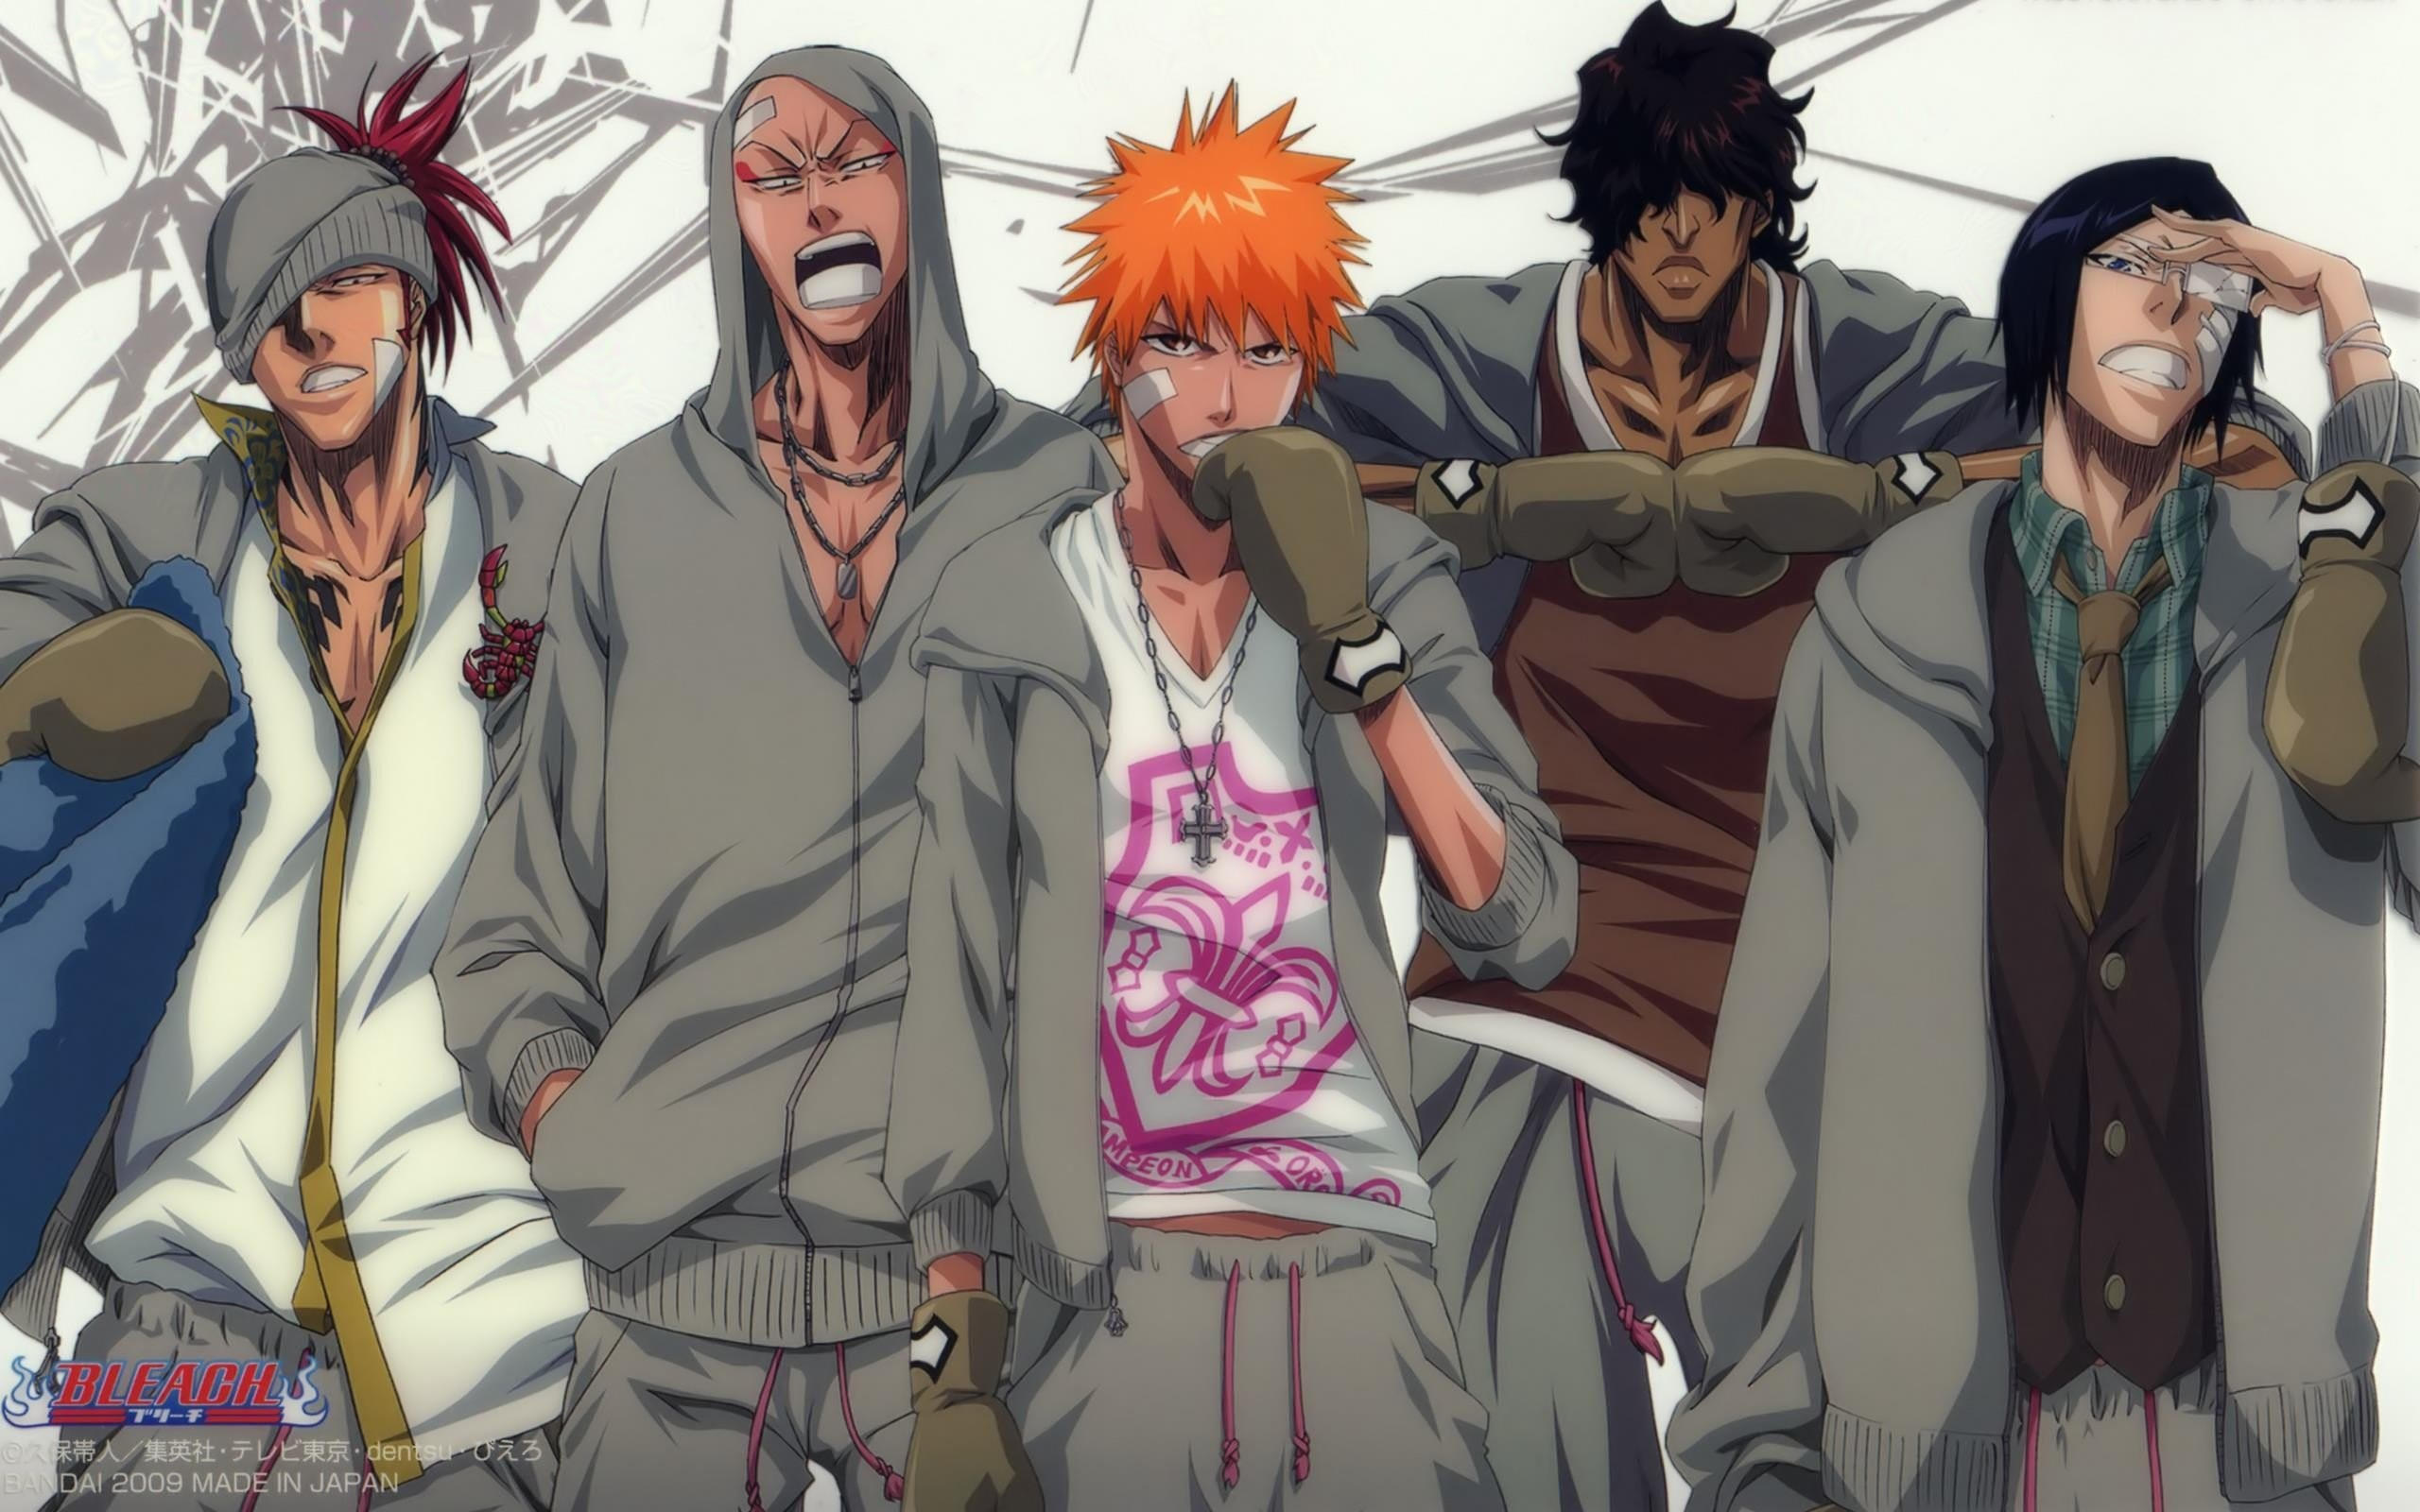 2560x1600 Anime Wallpaper: Bleach Character Wallpaper Iphone for HD